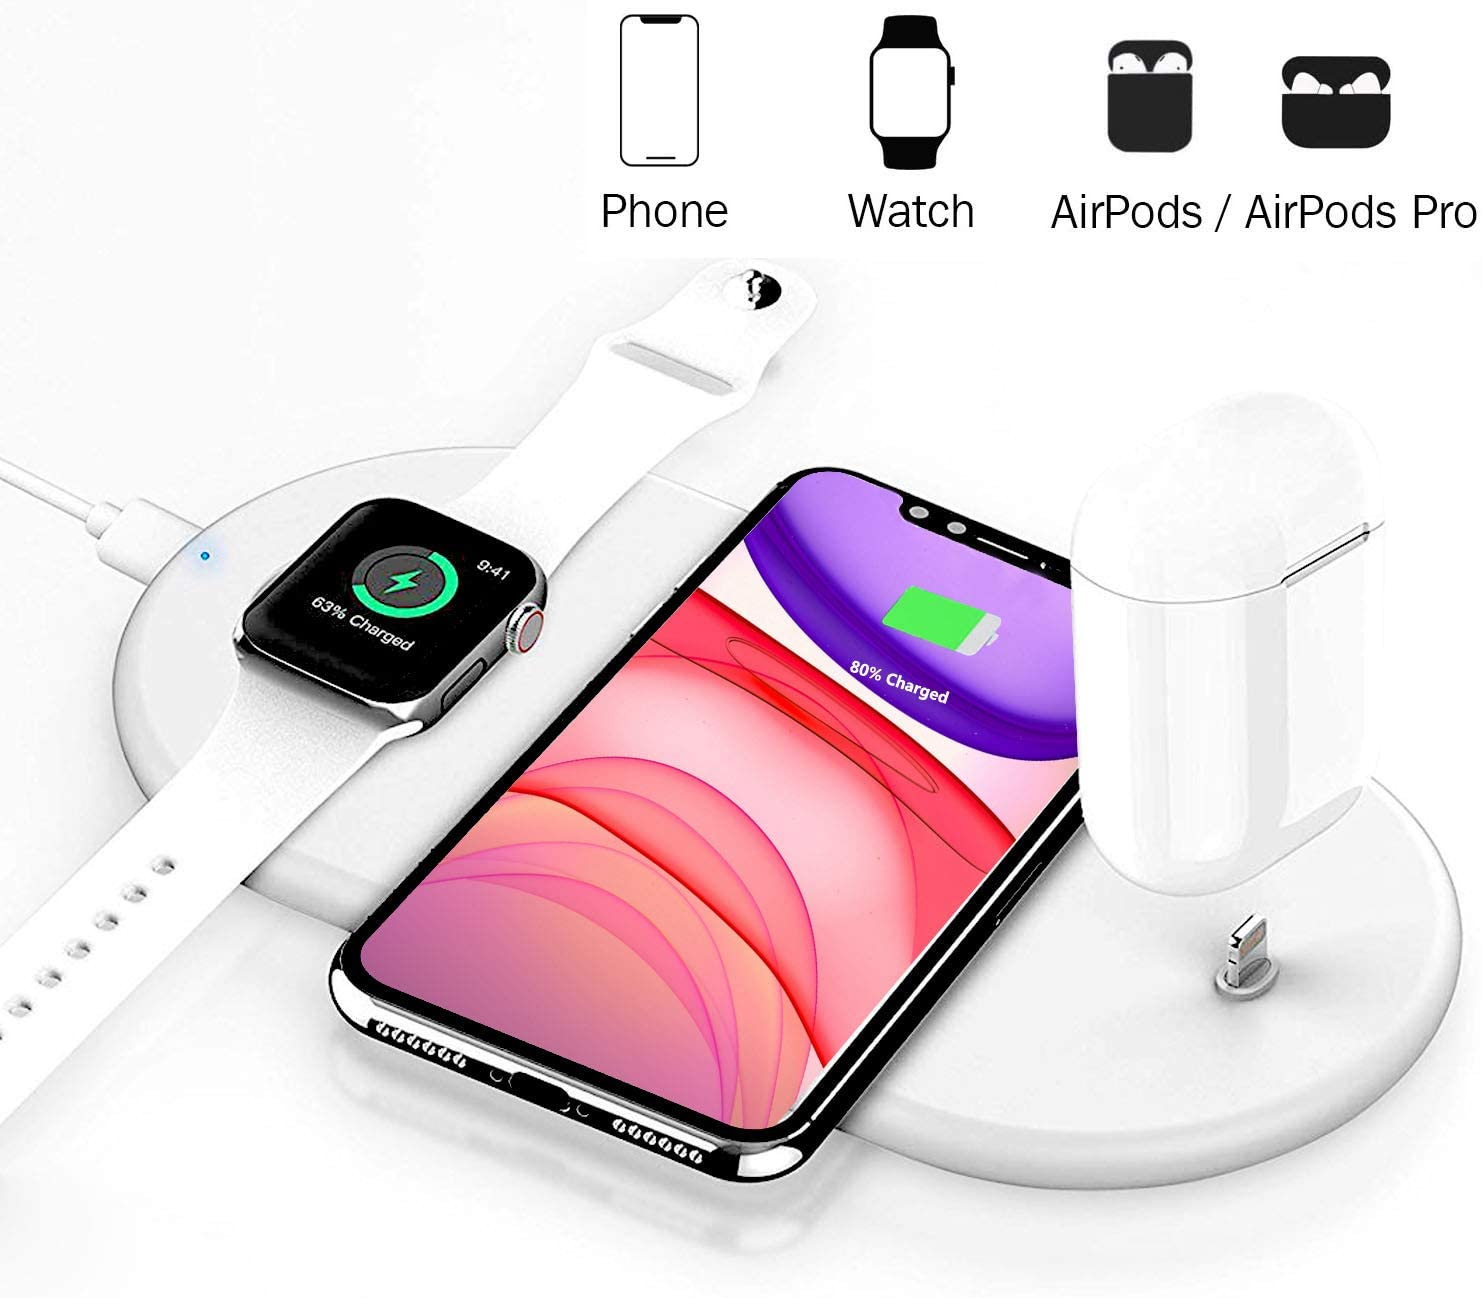 Wireless Charging Station, 3 in 1 Wireless Charger for iPhone 11 / 11Pro Max/X/XS/XR/8 Plus, Wireless Charger Stand for Apple Watch & iPhone & Airpods Pro, Qi Charging Dock for Airpods Pro/1/2